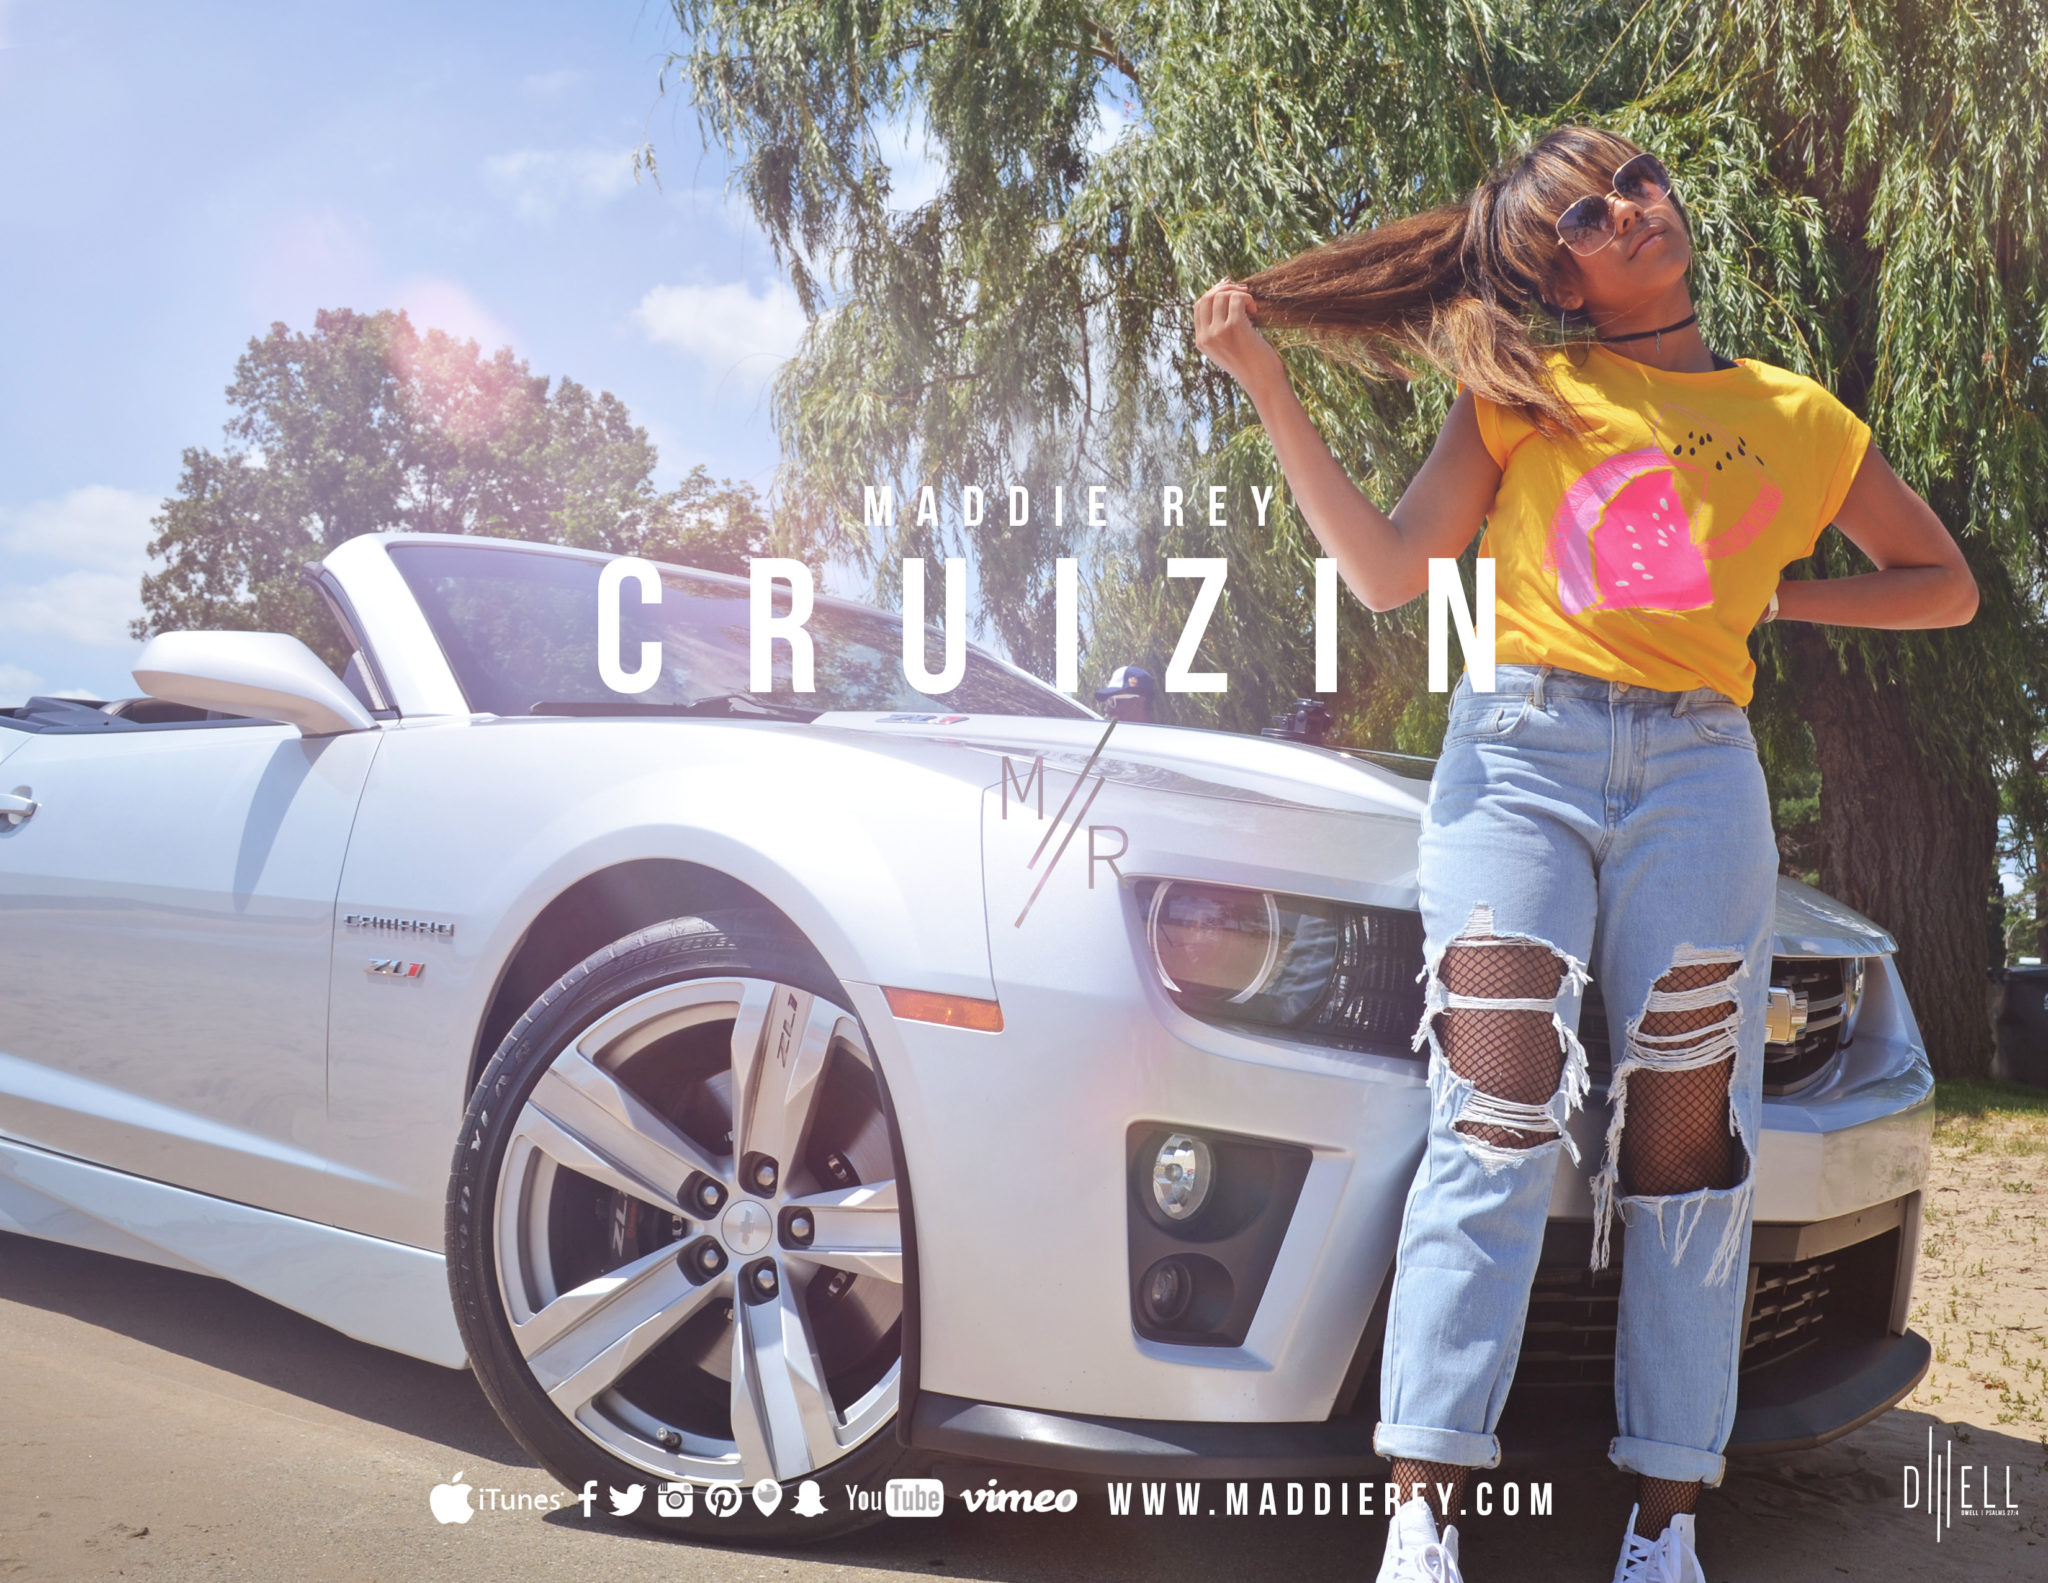 MADDIE REY RELEASES 'CRUZIN' TO CHRISTIAN RADIO